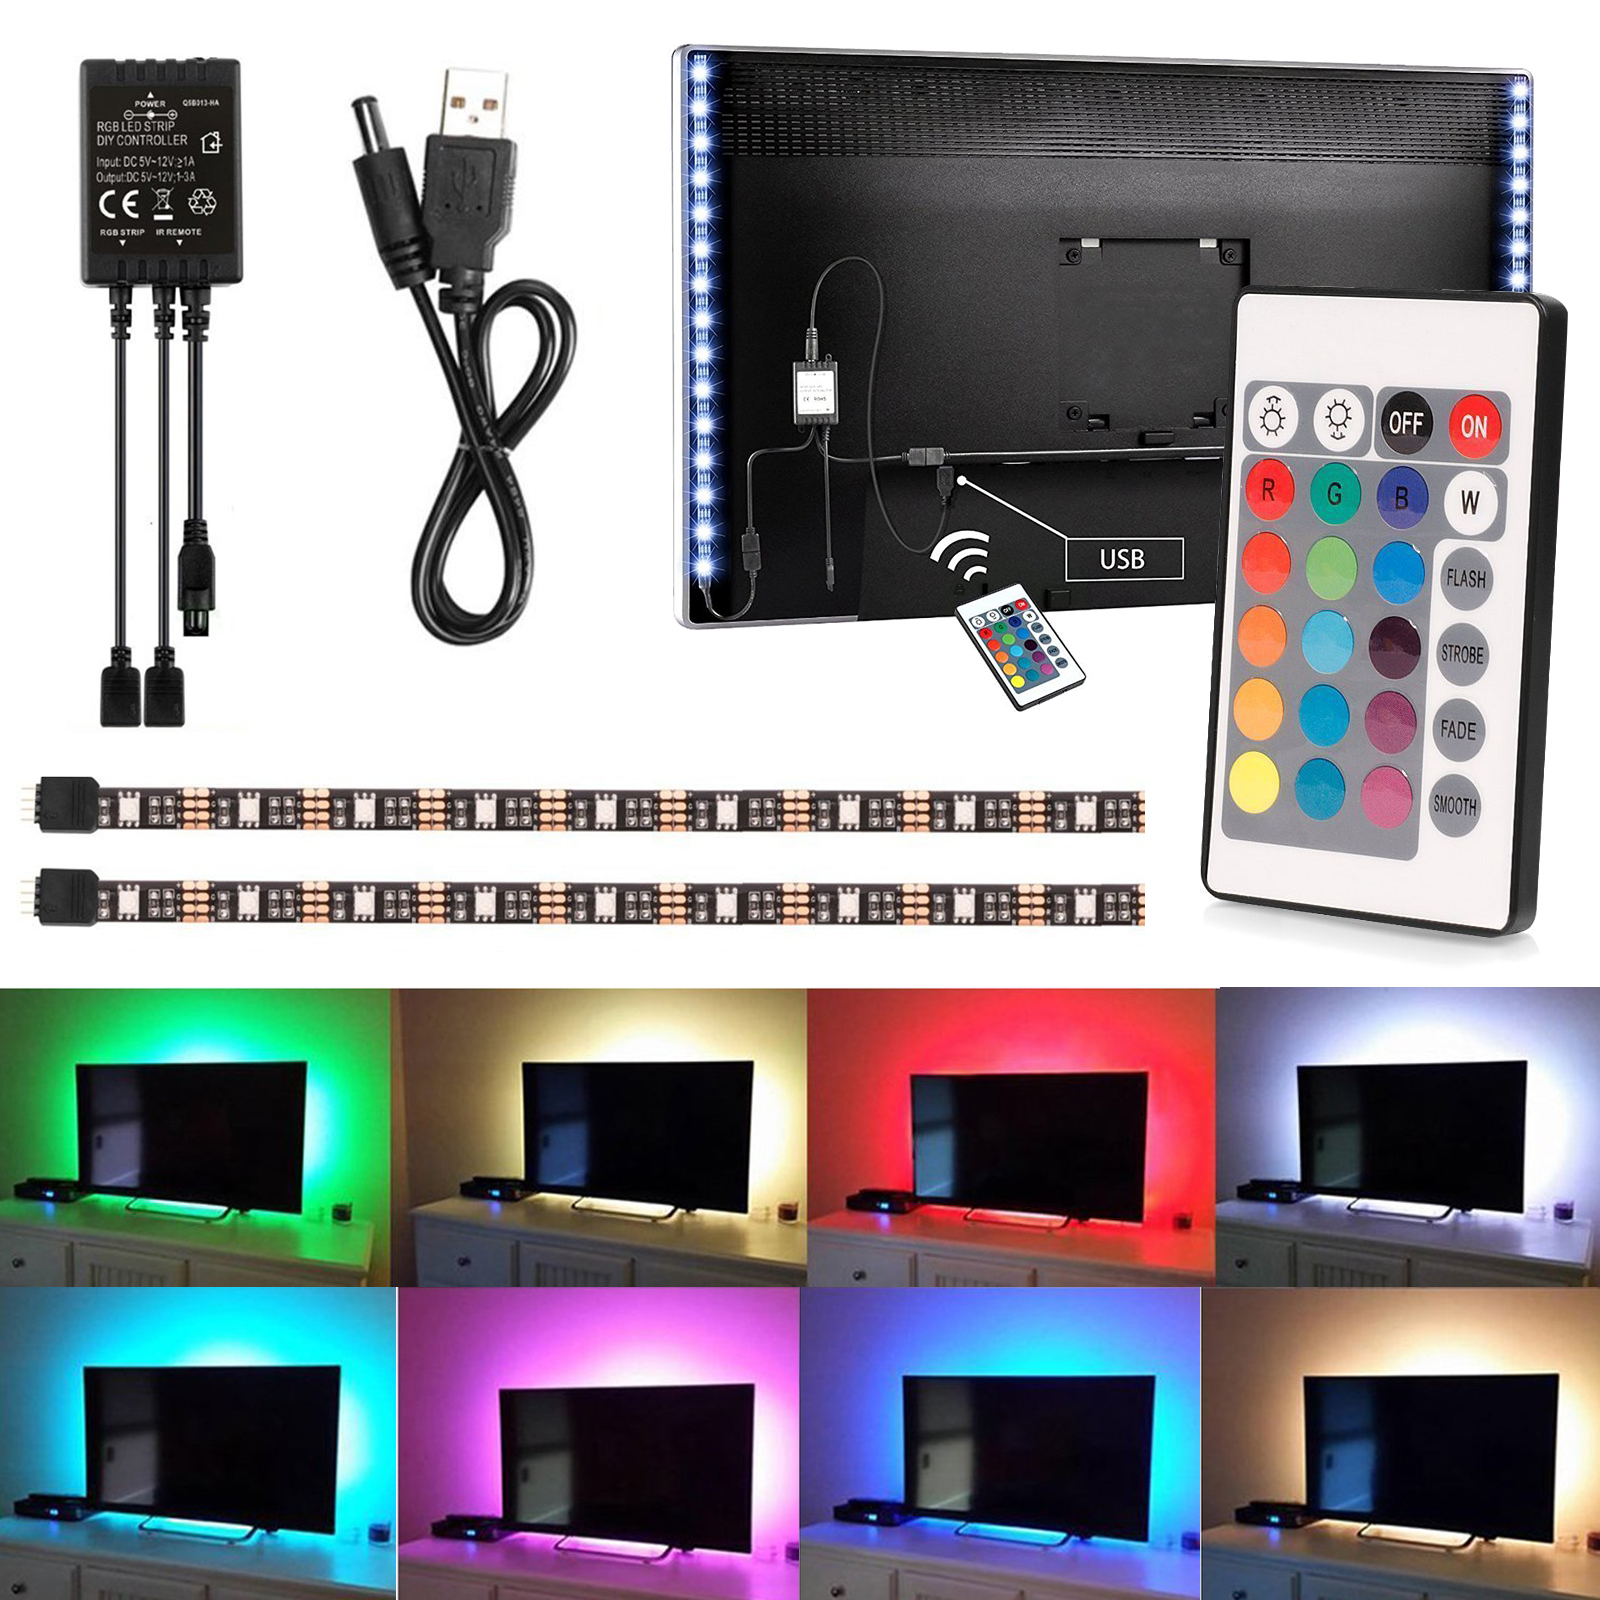 EEEKit 2PCS 50cm USB LED TV Light Strip 5V RGB LED Mood Background Lighting + IR Remote for Smart TV HDTV PC